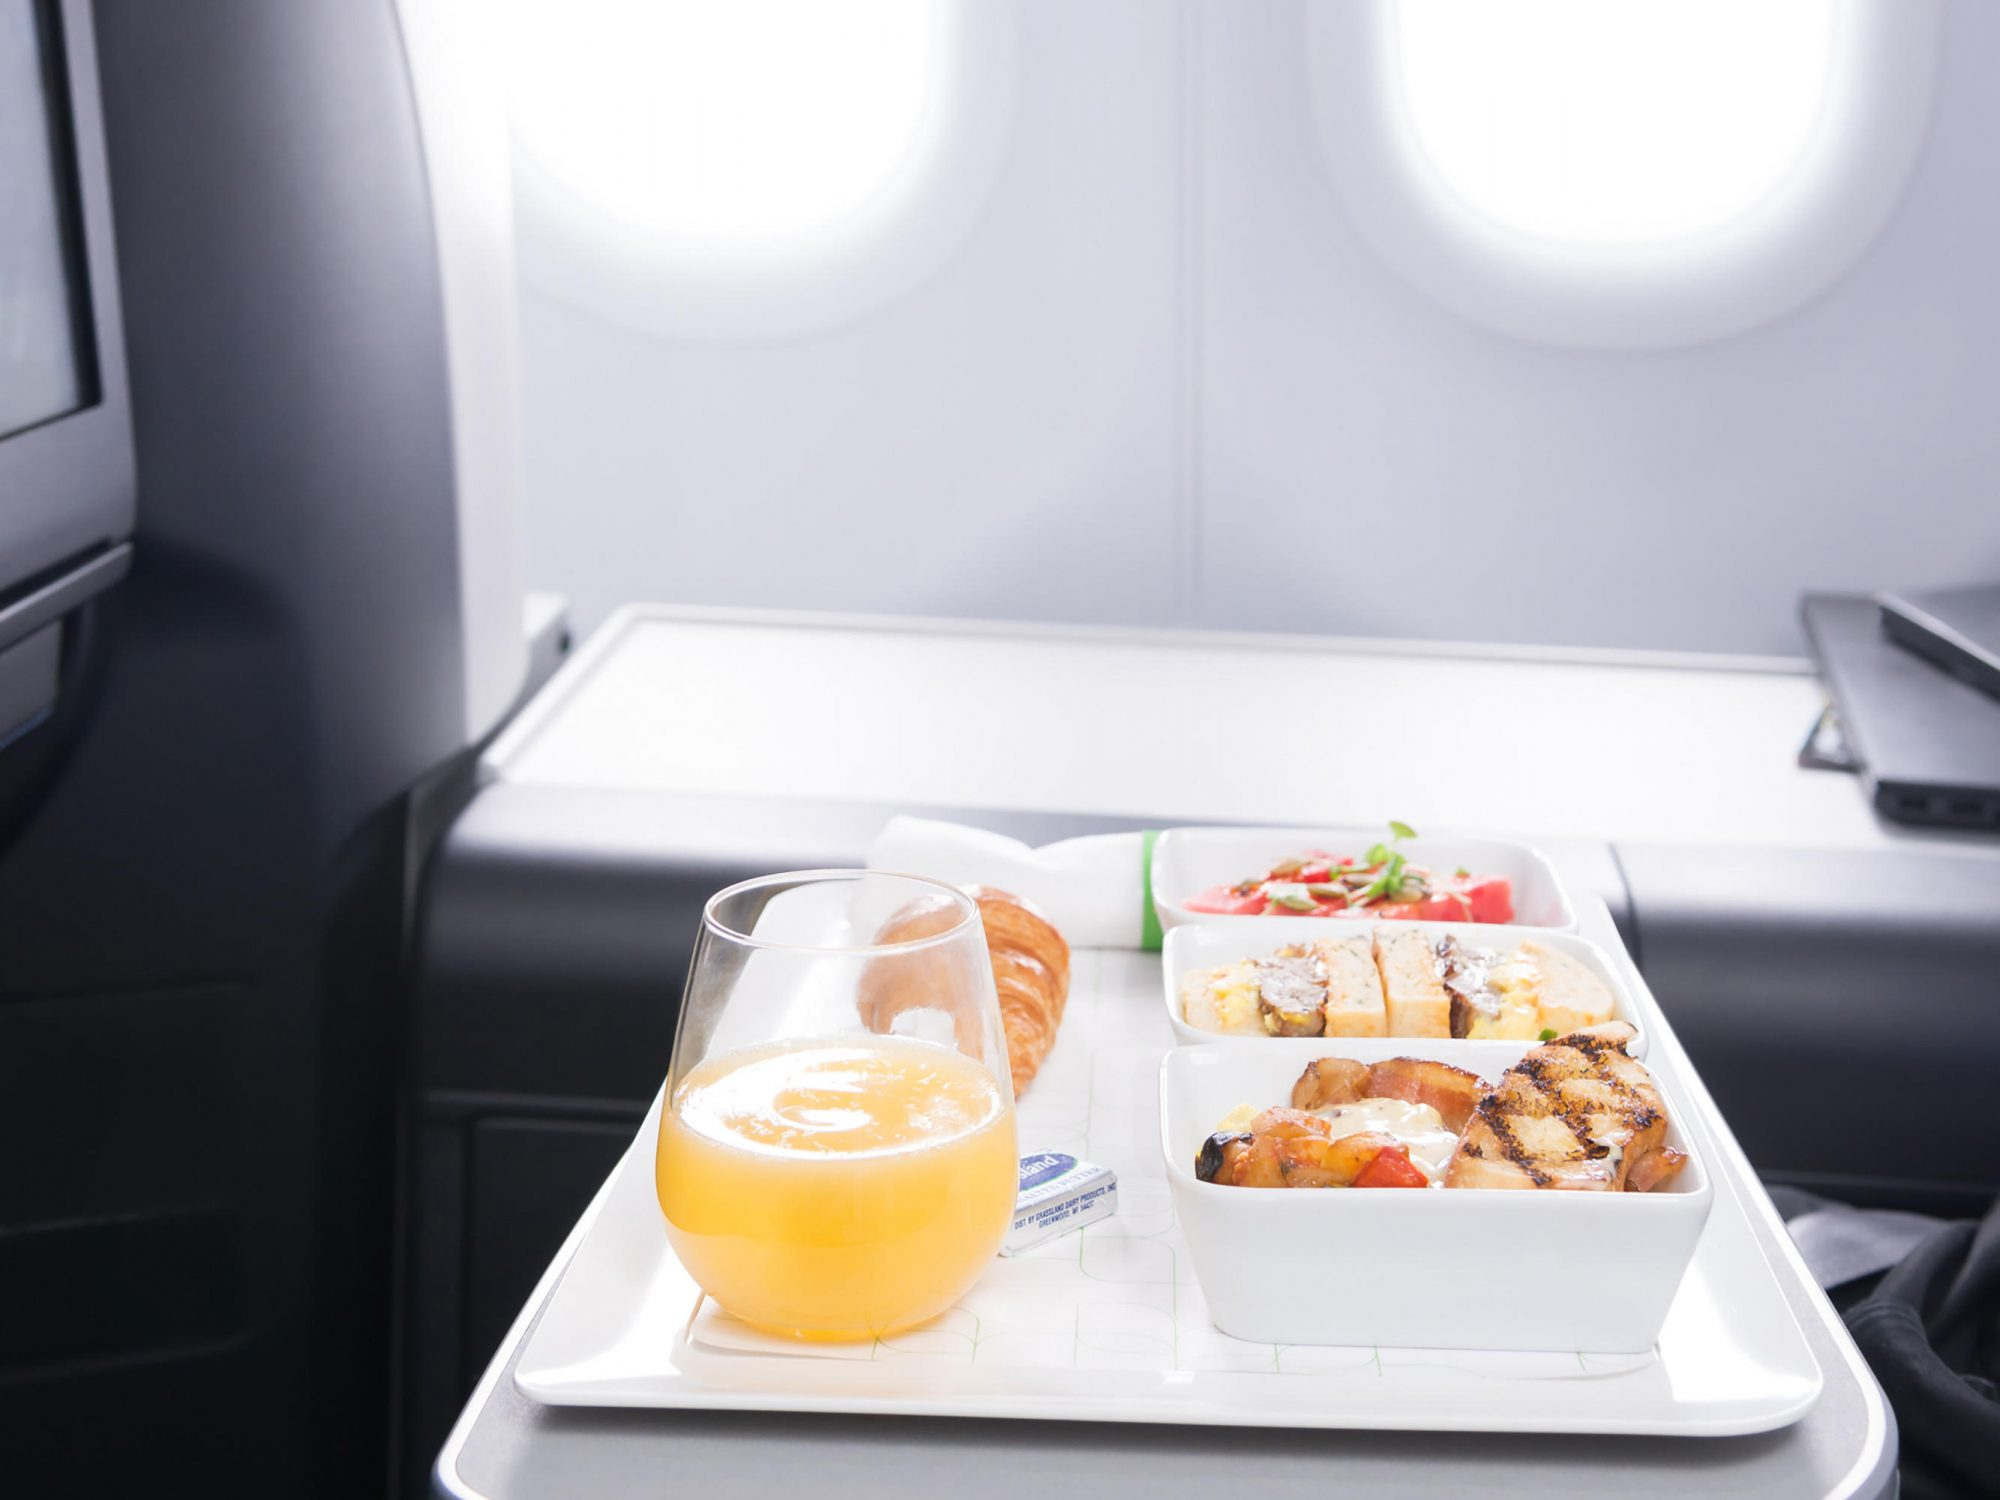 Here's How to Get the Healthiest Airline Meal When Traveling 1808w-Jet-Blue-Mint-Meal